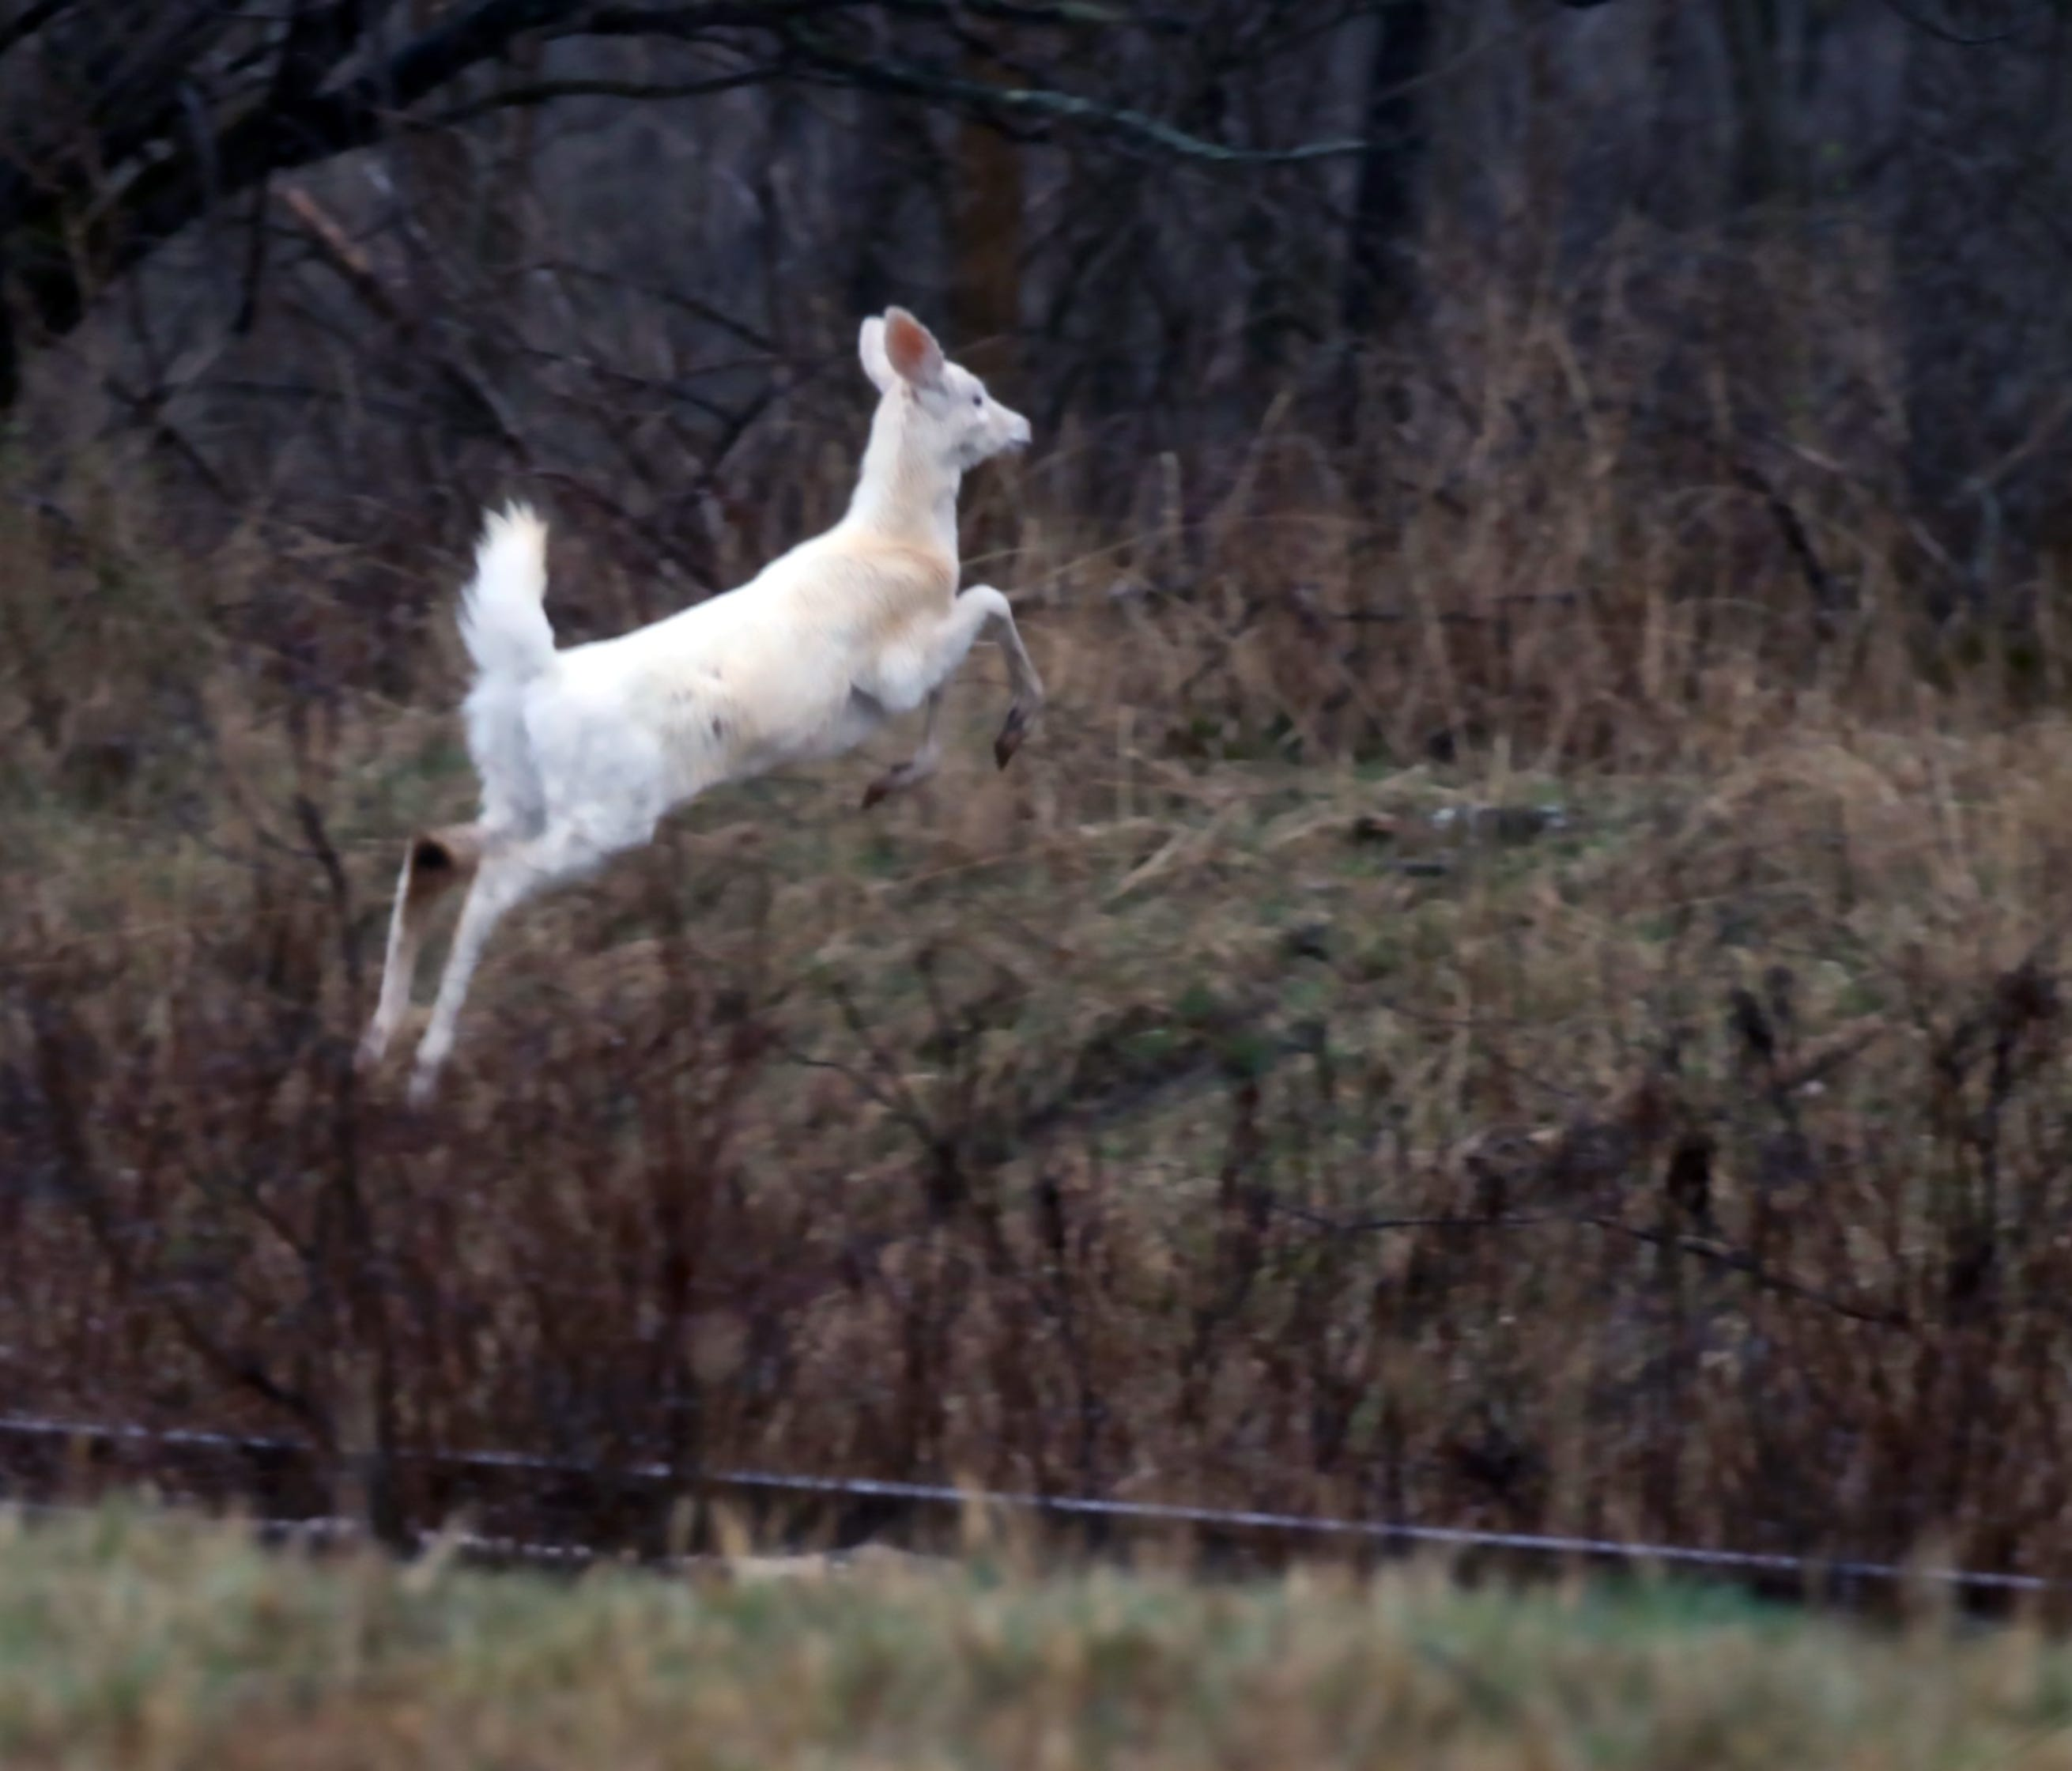 A Seneca white deer leaps over a ditch in part of the former Seneca Army Depot in Romulus, N.Y., that's now Deer Haven Park.